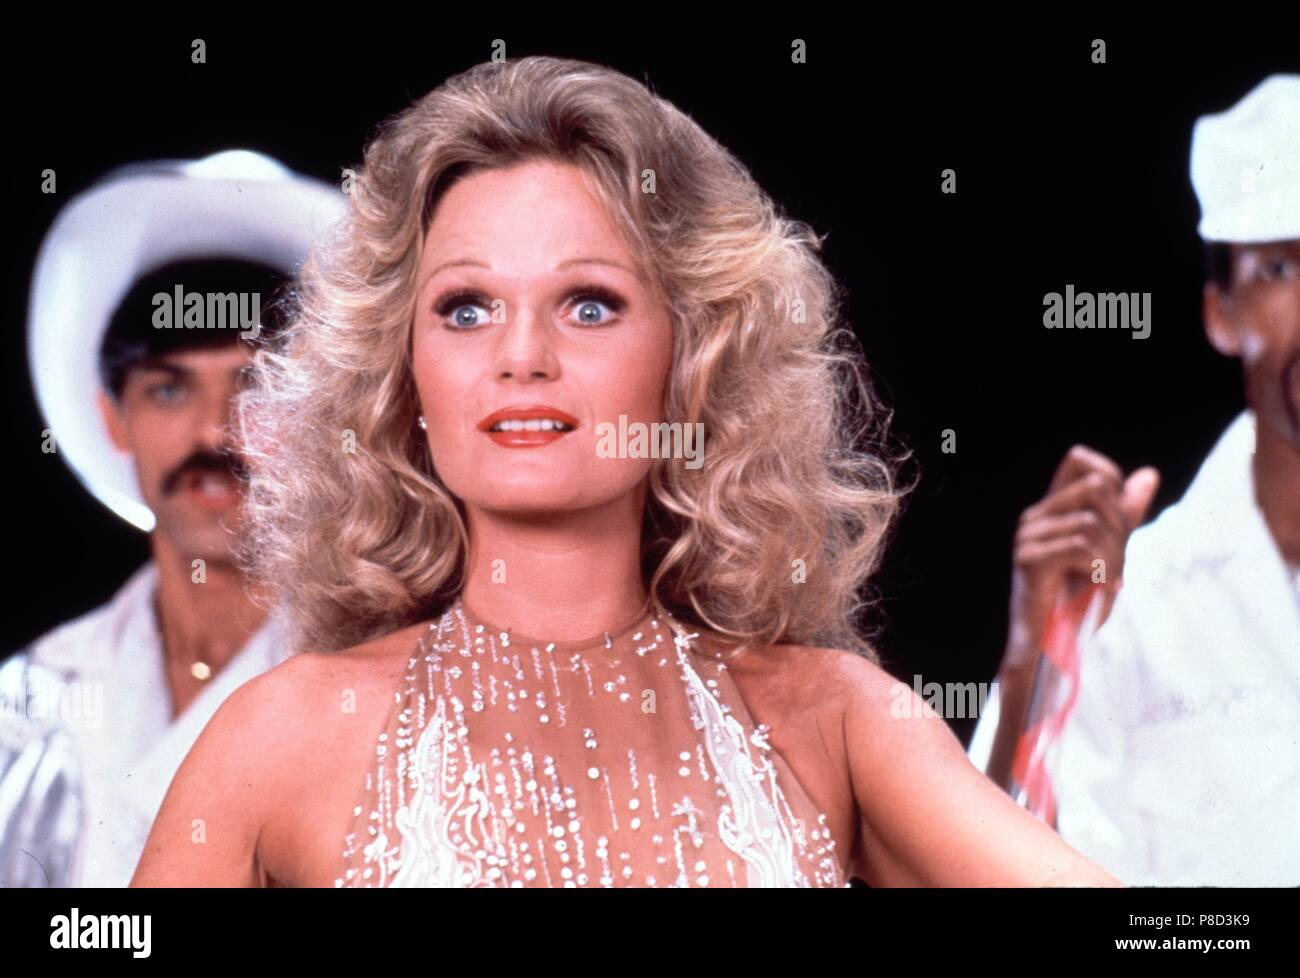 Can't Stop the Music (1982) Valerie Perrine, Randy Jones as the Cowboy     Date: 1980 Stock Photo